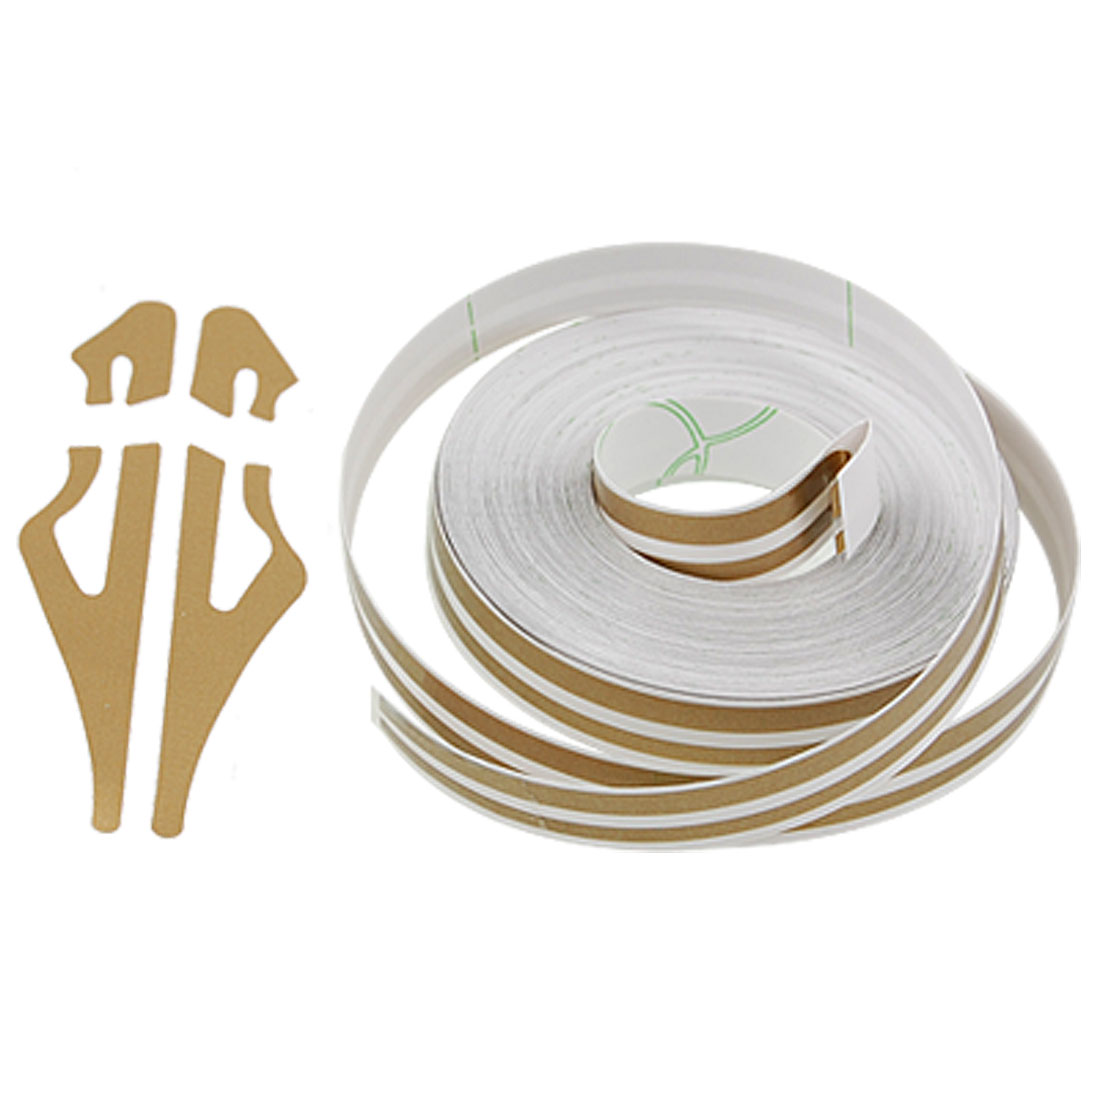 Khaki Auto Film/ Adhesive Striping Tape W12 x L9800mm